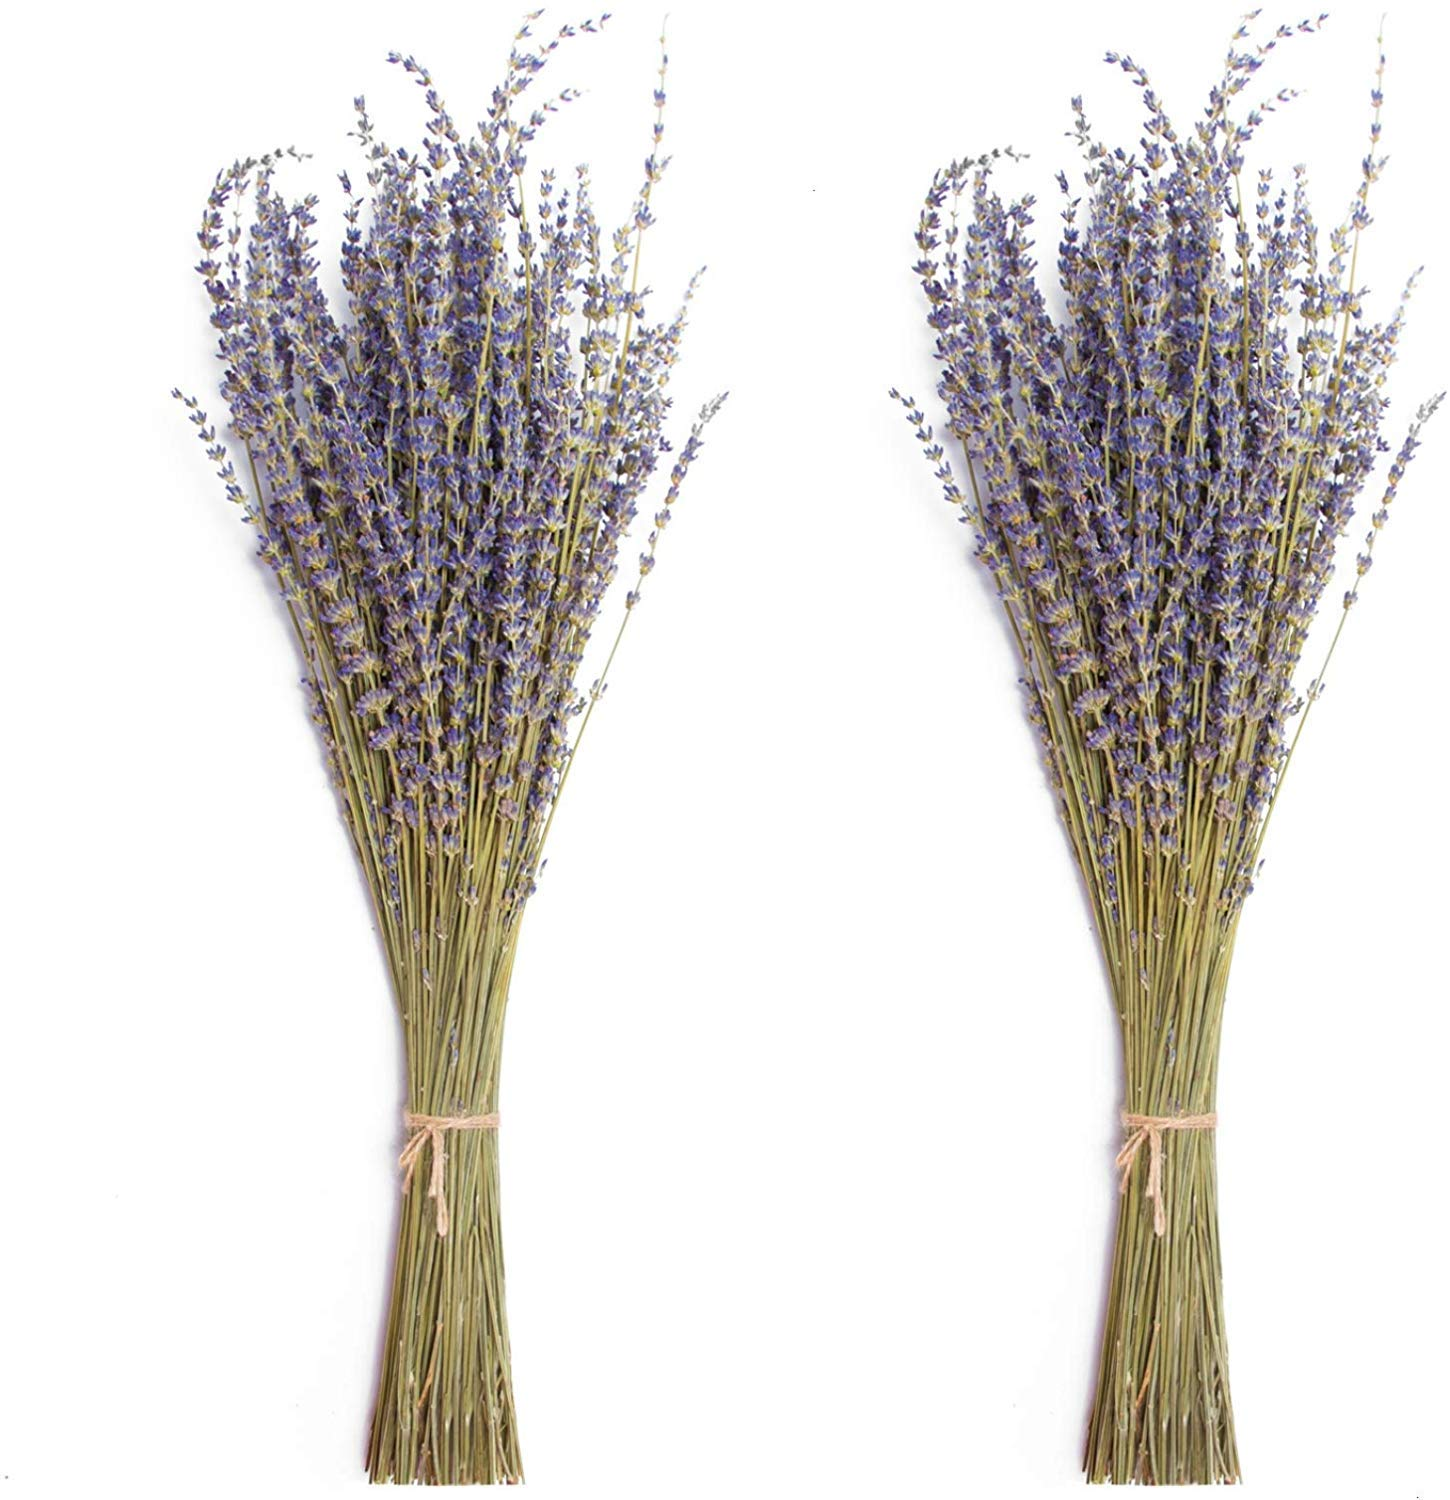 Global footprint Dried Lavender Bundles 100% Natural Dried Lavender Flowers for Home Decoration, Photo Props, Home Fragrance, 2 Bundles Pack by Global footprint